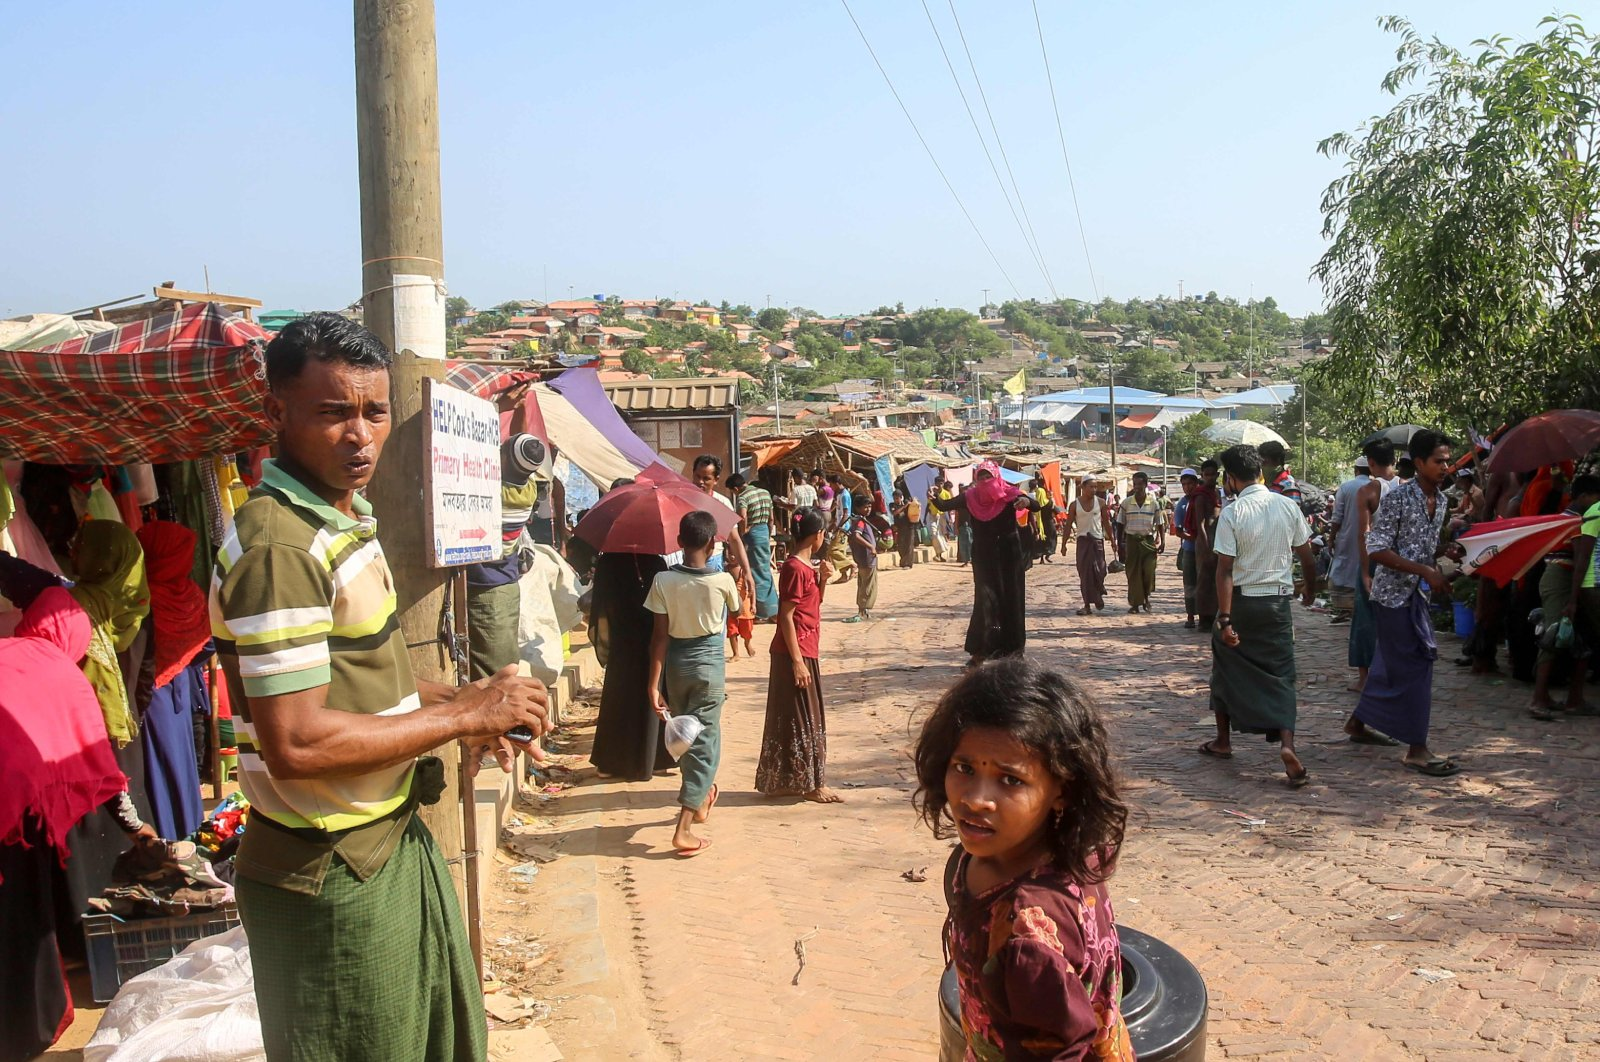 Rohingya refugees gather at a market as the first cases of the coronavirus have emerged in the area, in Kutupalong refugee camp, Ukhia, Bangladesh, May 15, 2020. (AFP Photo)